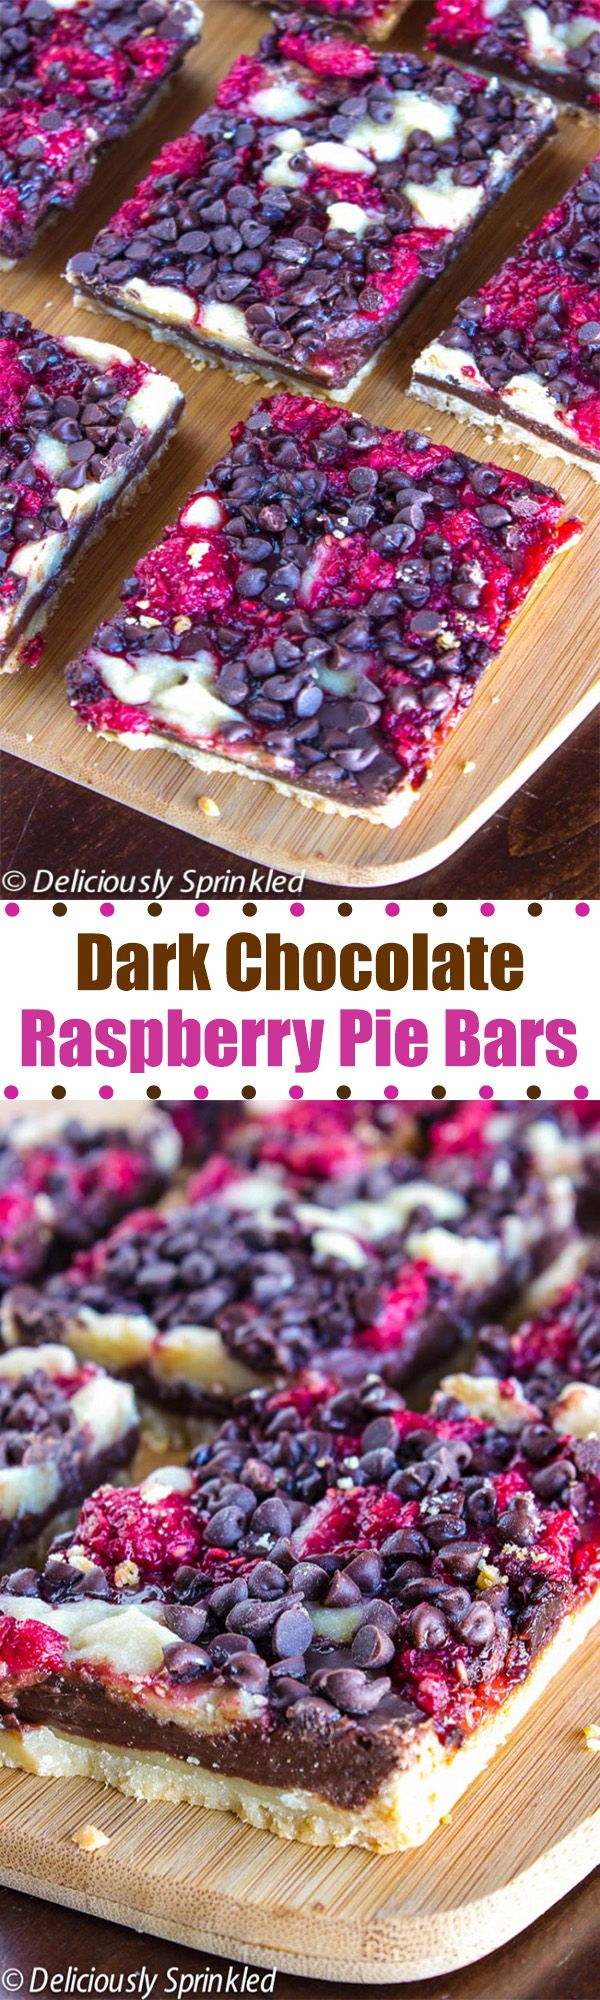 Dark Chocolate Raspberry Pie Bars- a delicious dessert that's super easy to make!  Don't these look absolutely AMAZING?!?!